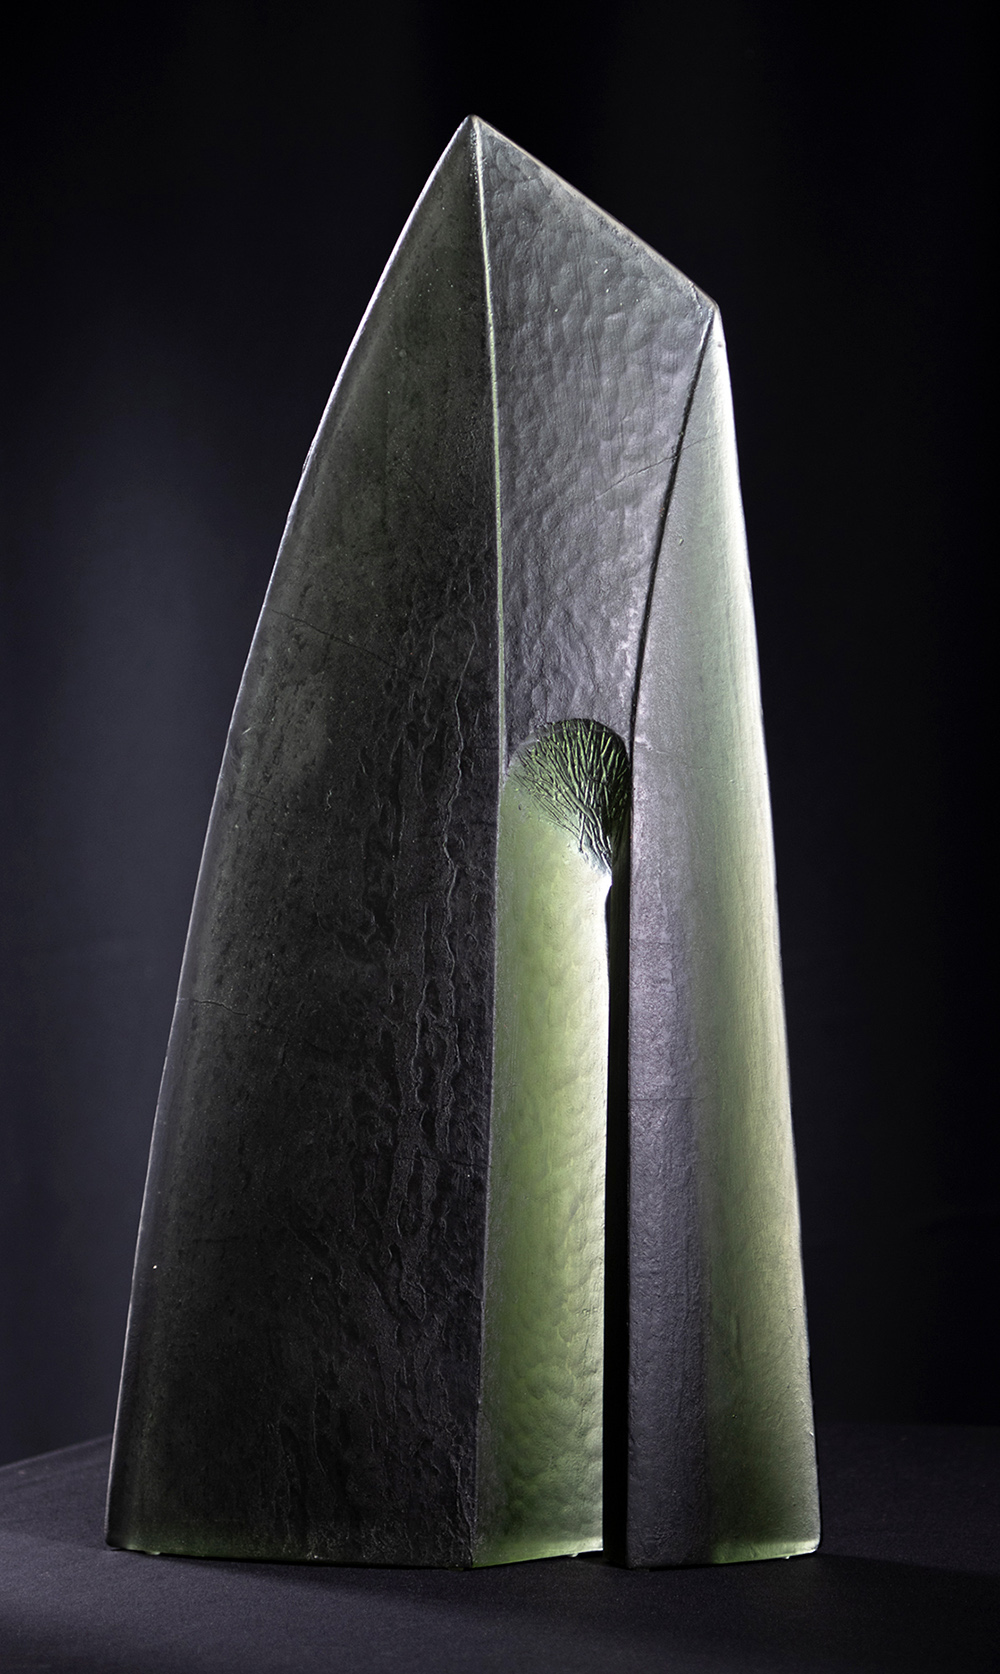 Peter Kovacsy, Cosmic Millennium Gathering, 1999, Karri Timber, 54 x 14cm, Photographed by Peter Kovacsy